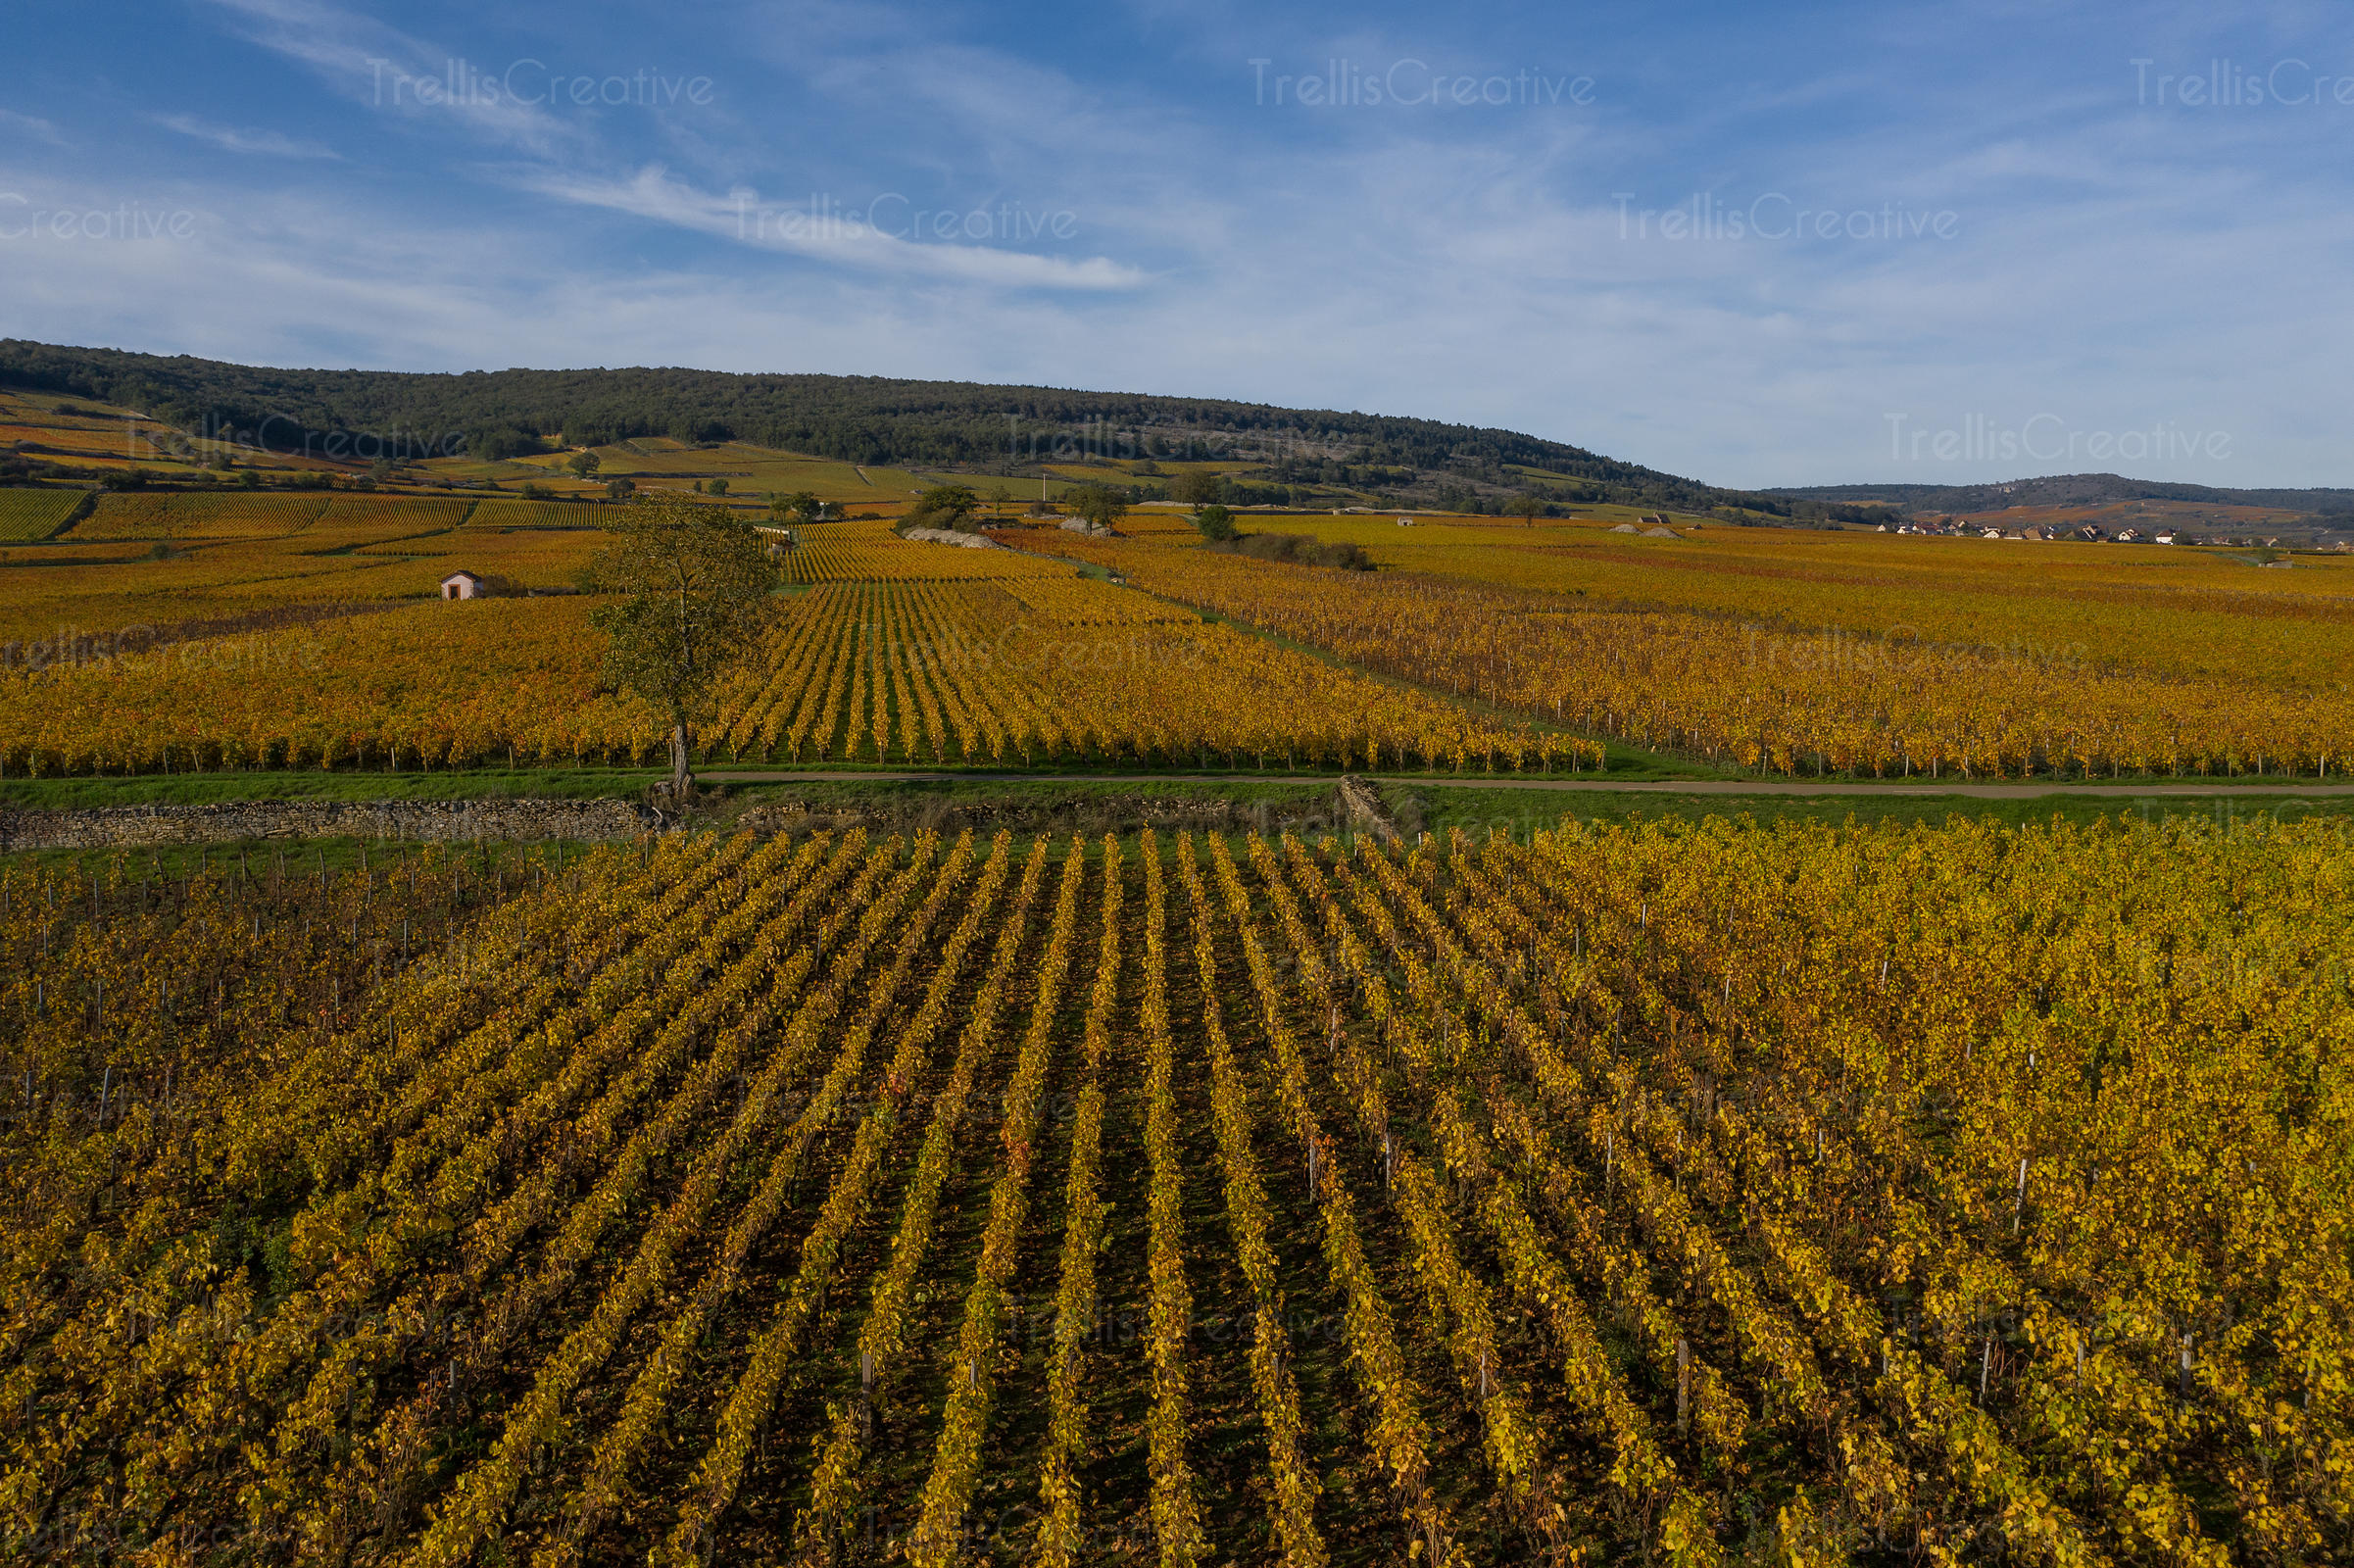 An aerial photograph of the colorful vineyards in Burgundy, France in autumn